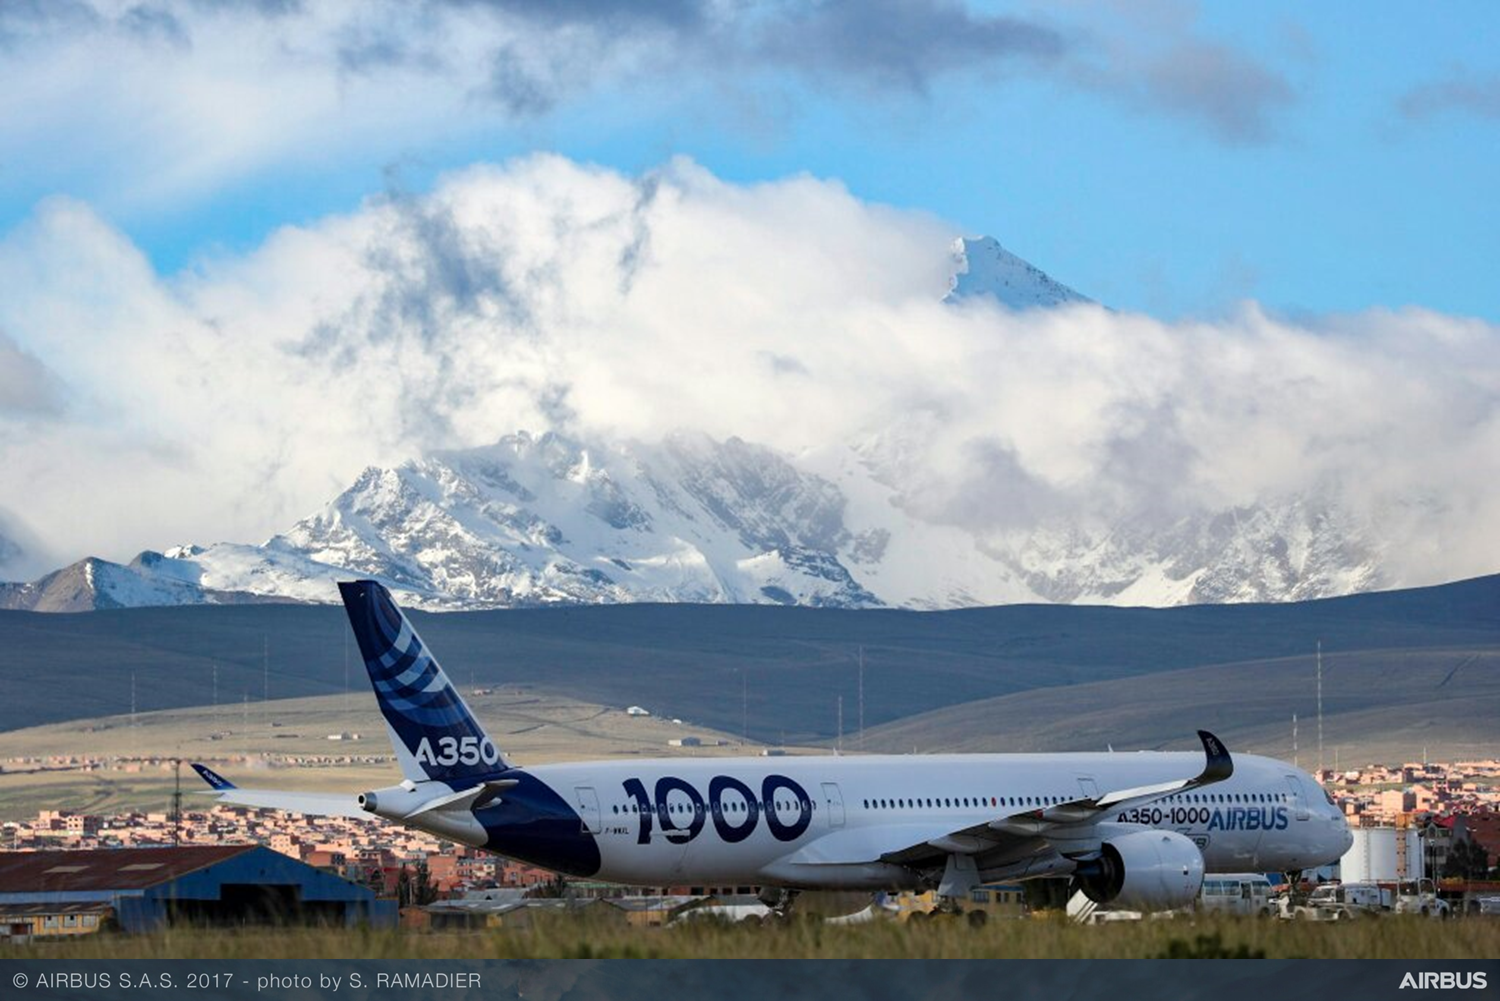 A350-1000 completes high and warm flight tests in Latin America